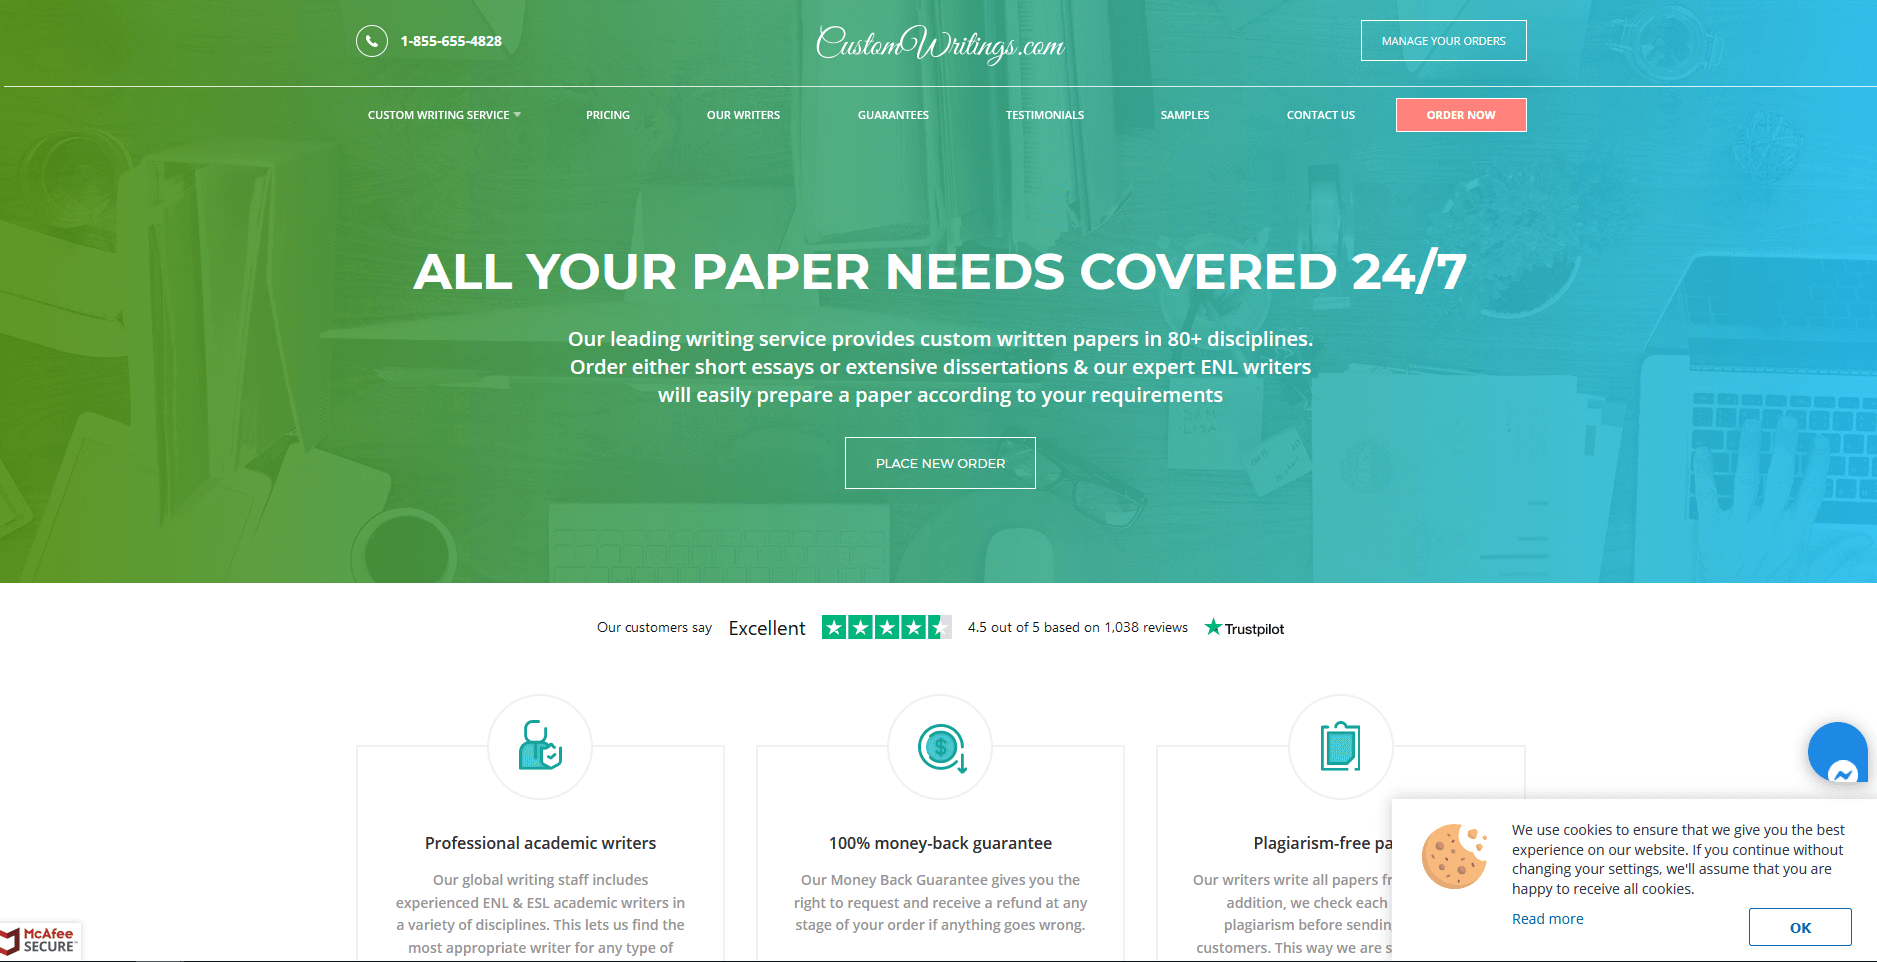 Customwritings.com Writing Service Review by TheLegitEssay